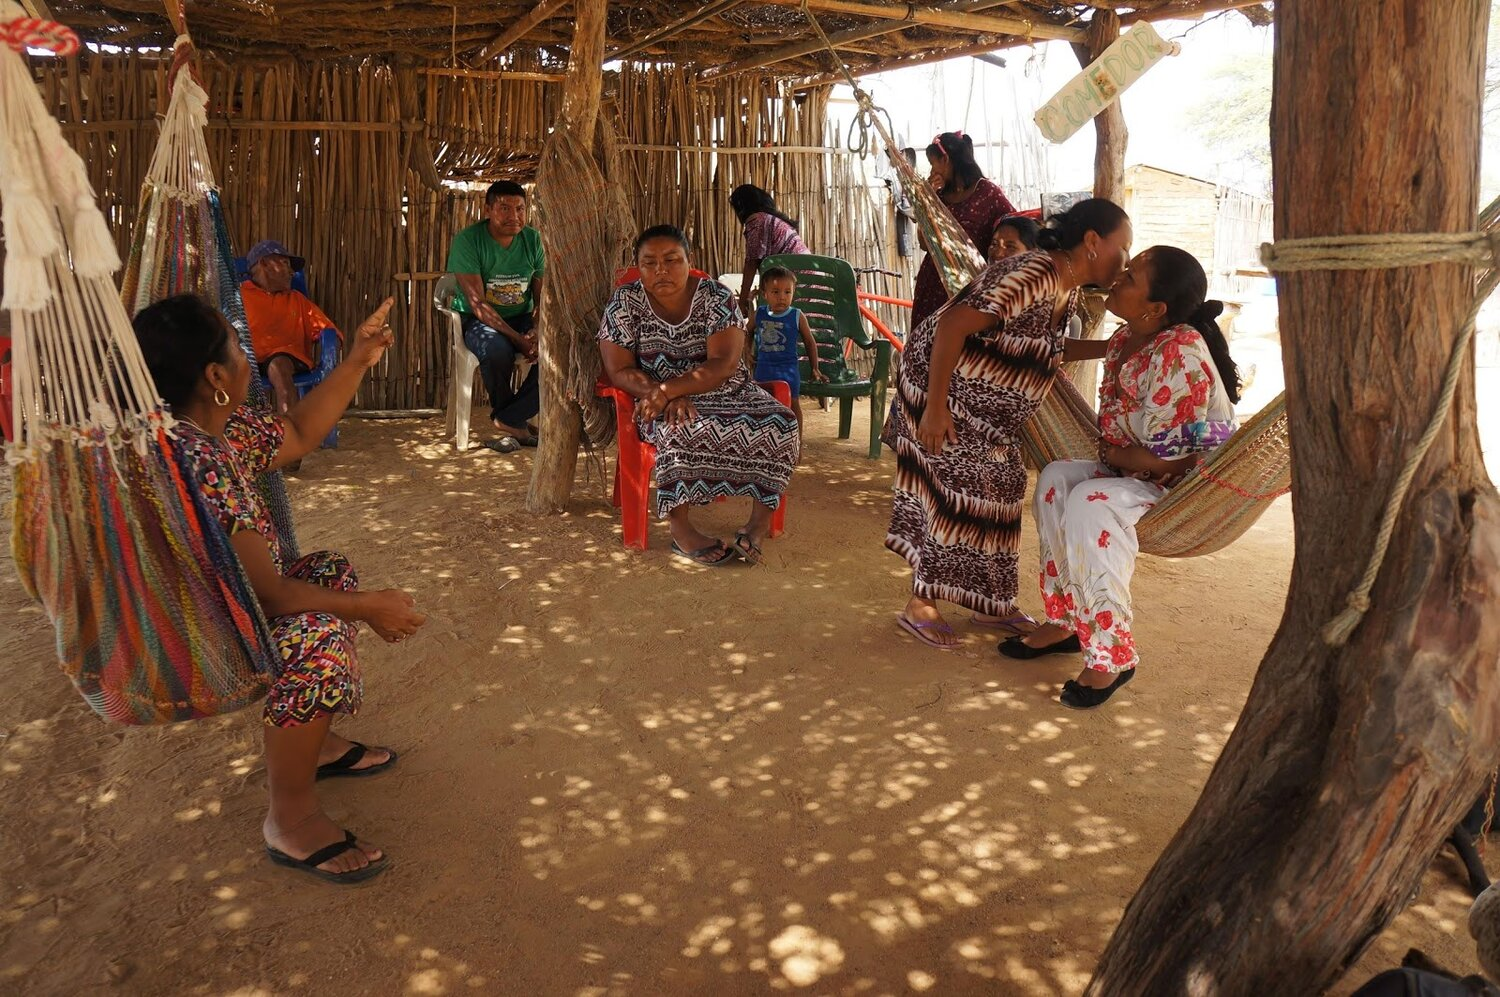 The Wayuu live and sleep in communal spaces within their rancherias. La Guajira, Colombia. Photo by D.H. Rasolt.